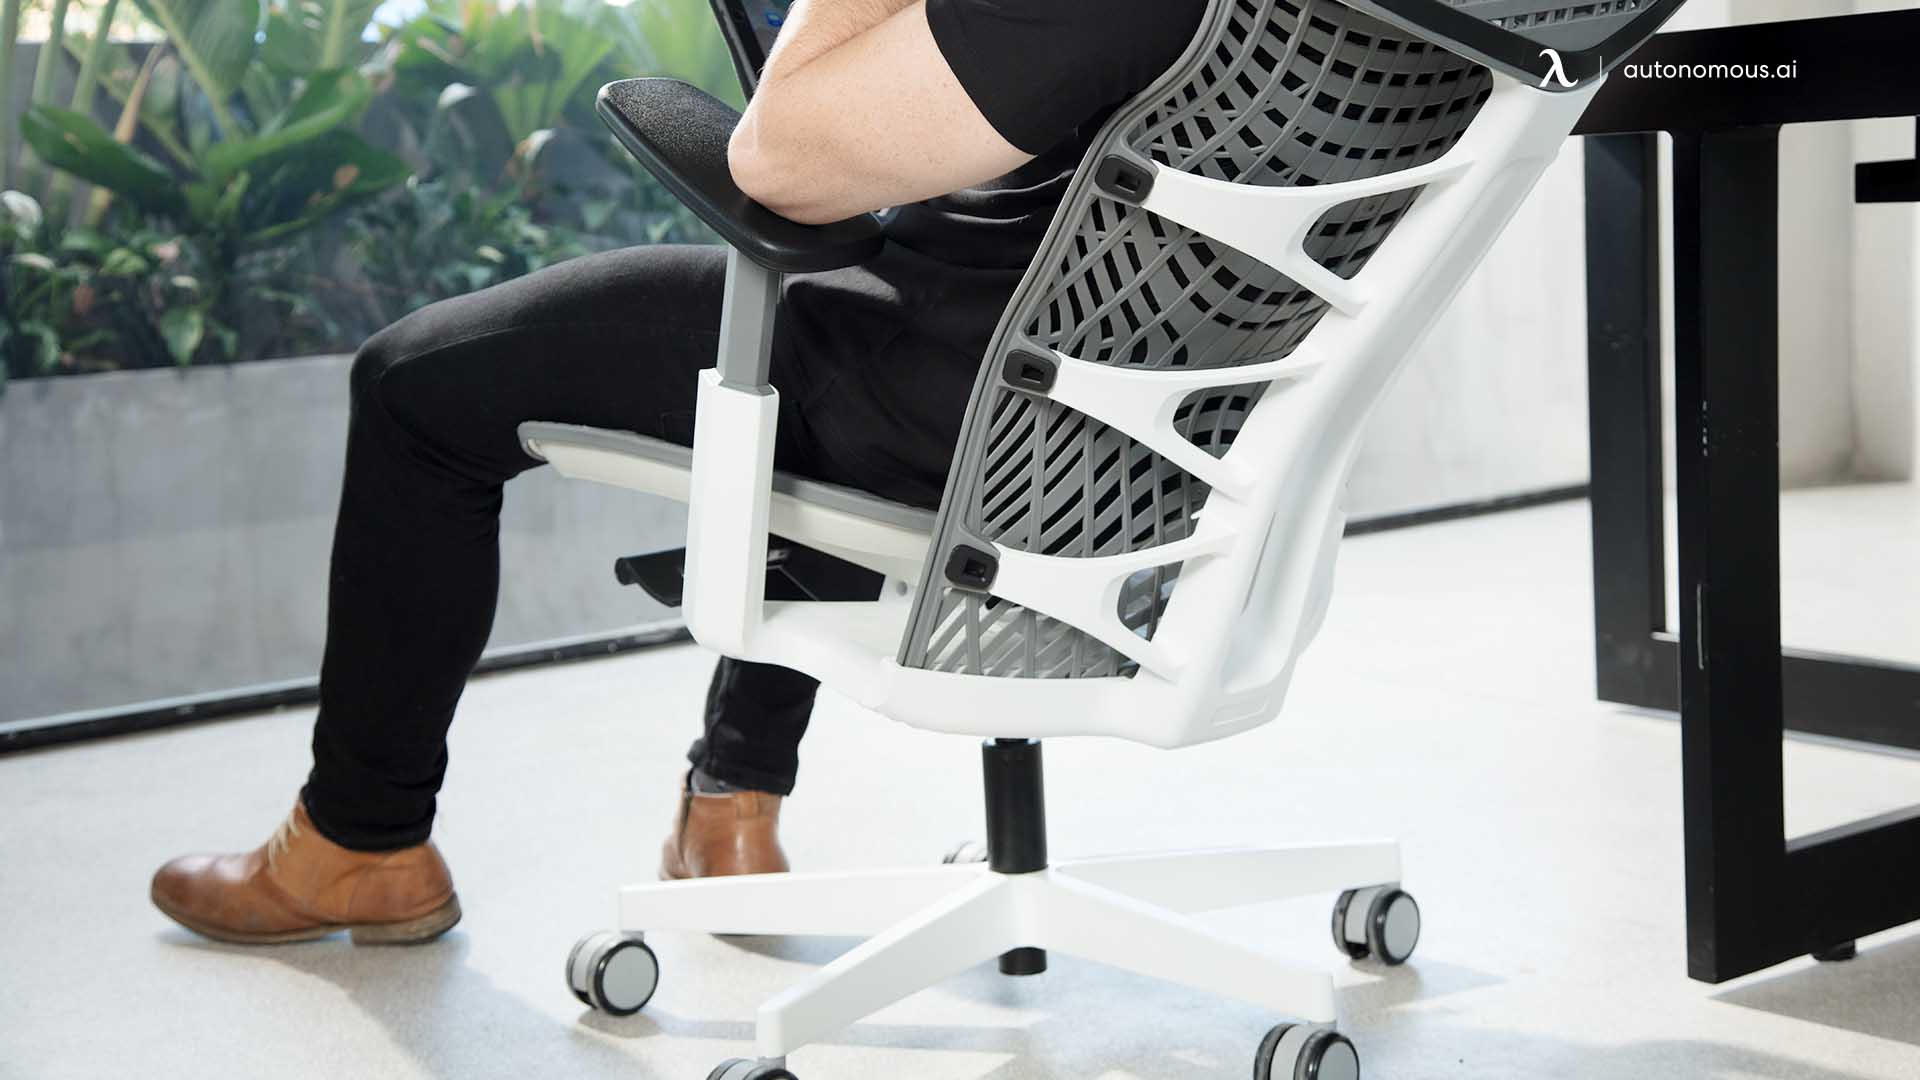 Why does one need an ergonomic chair